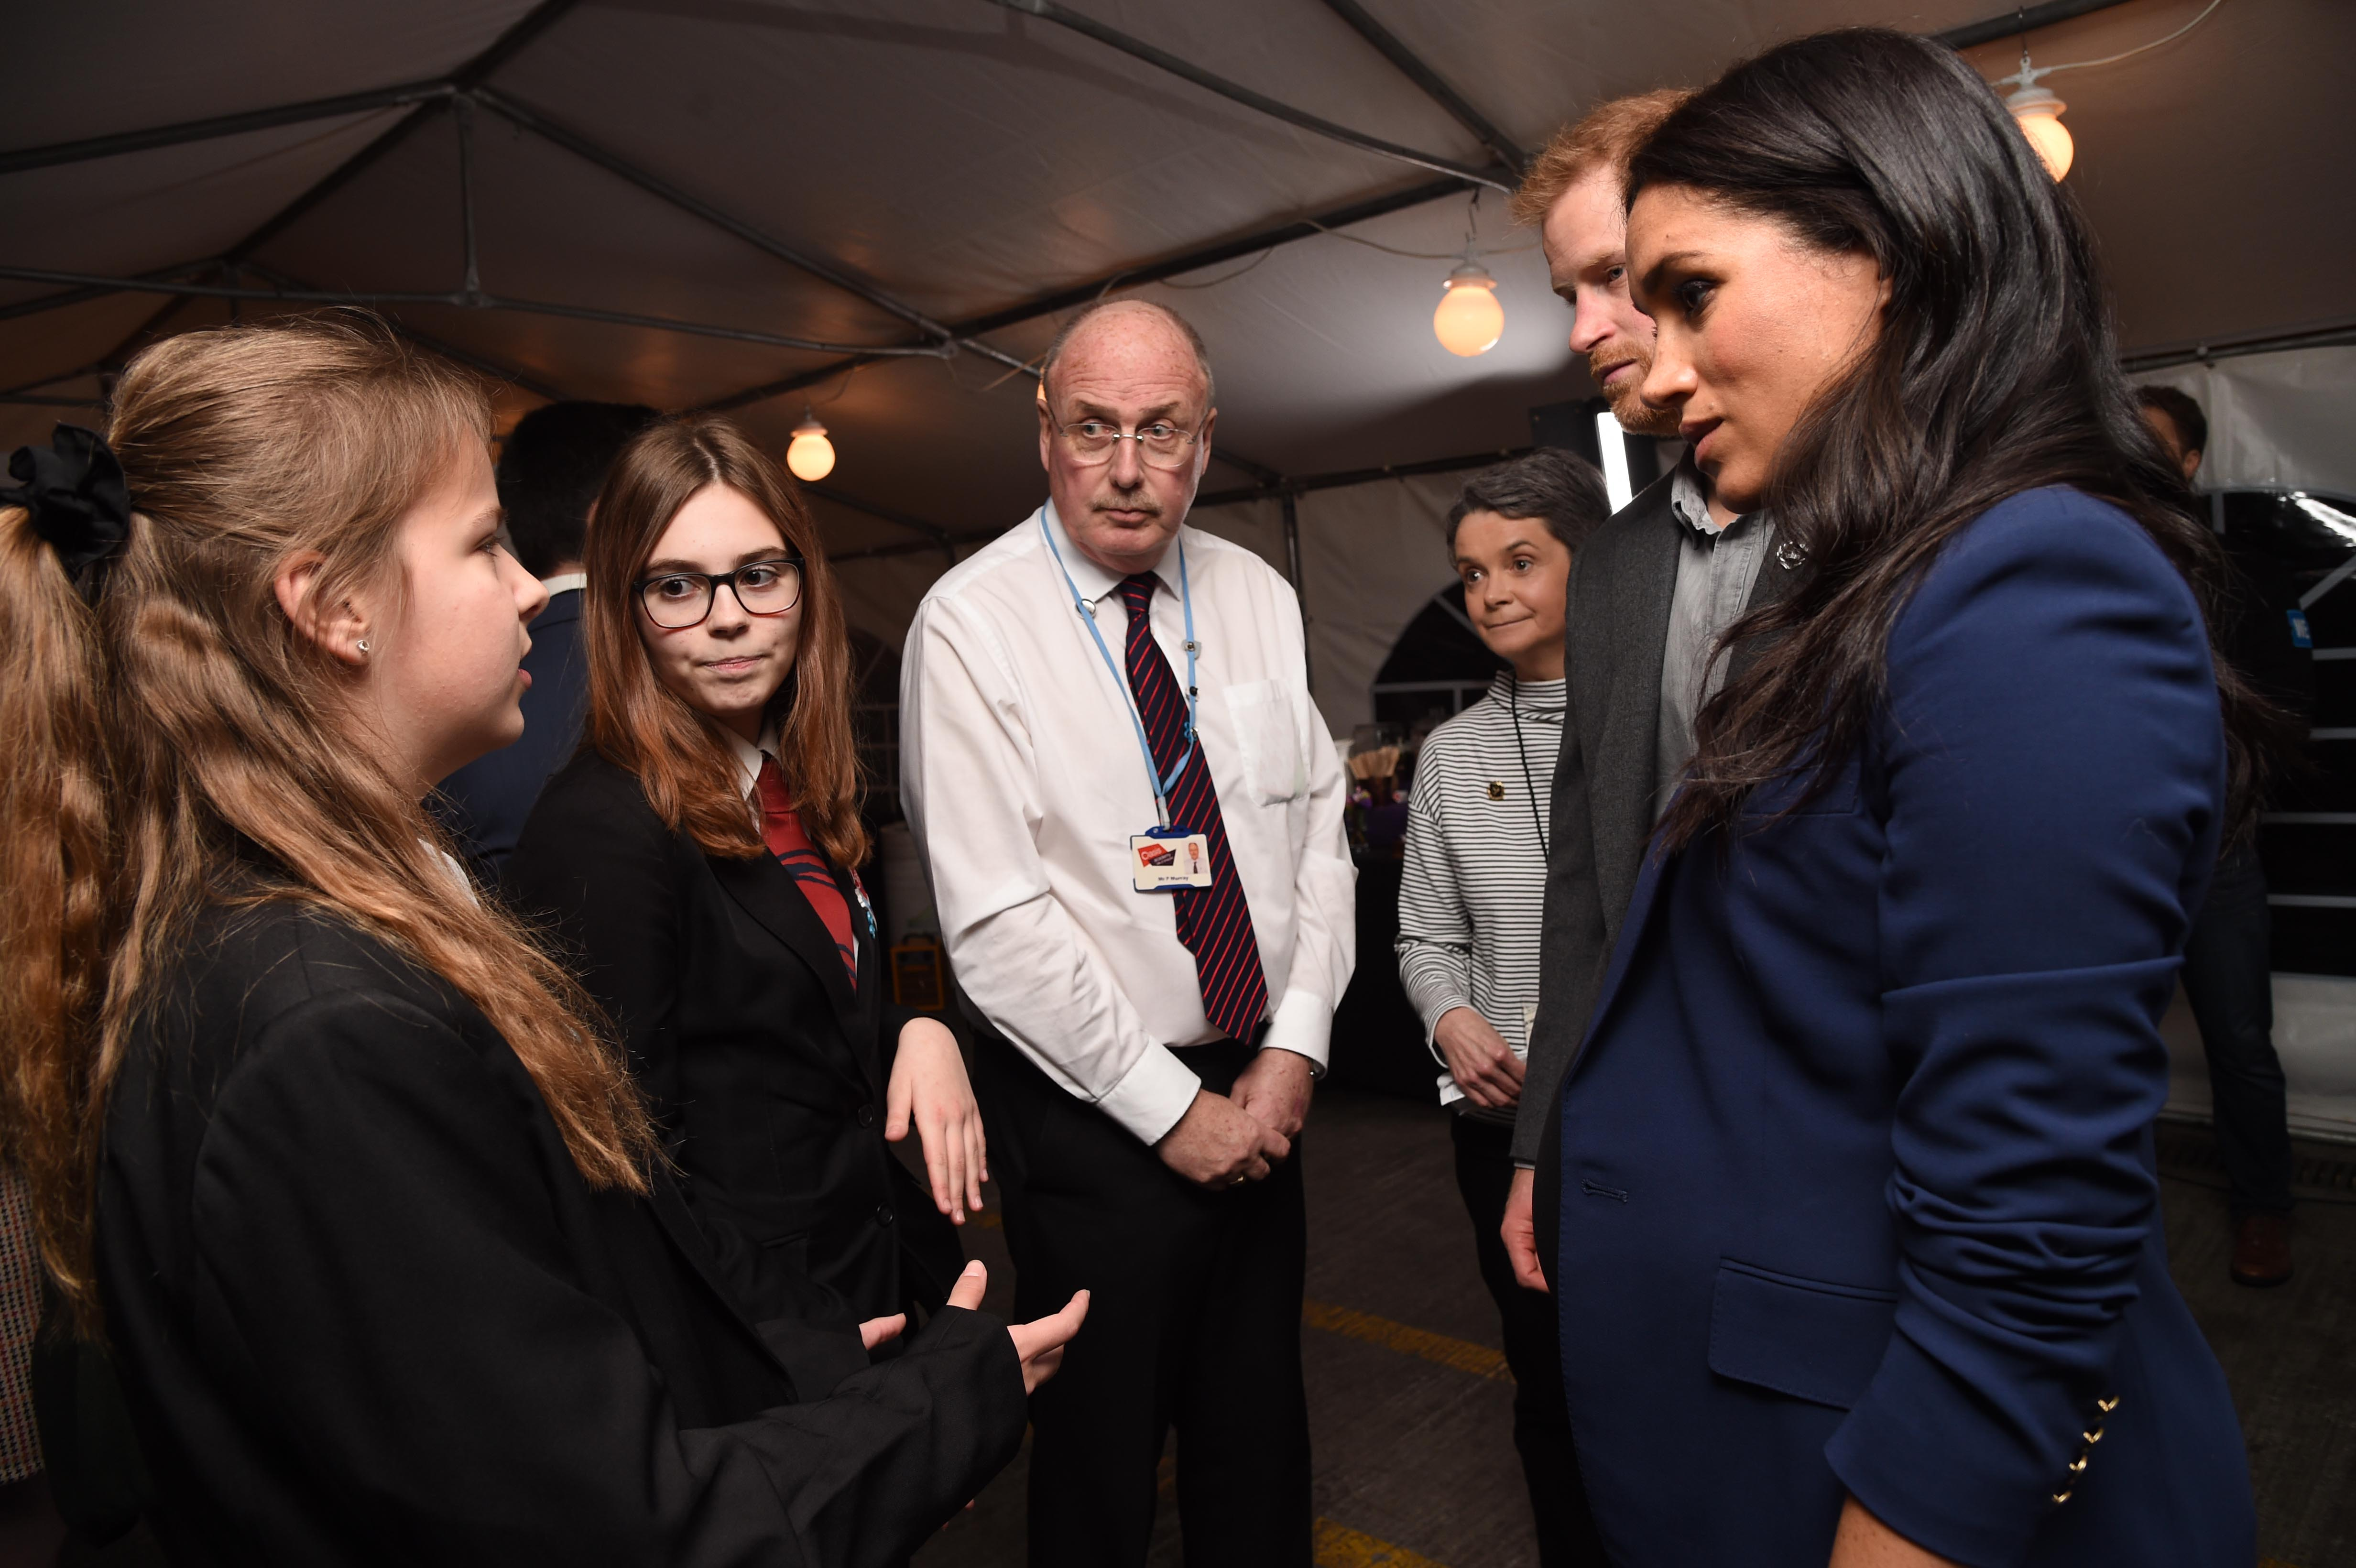 'Exciting' as students meet royals after WE Day Concert in Wembley